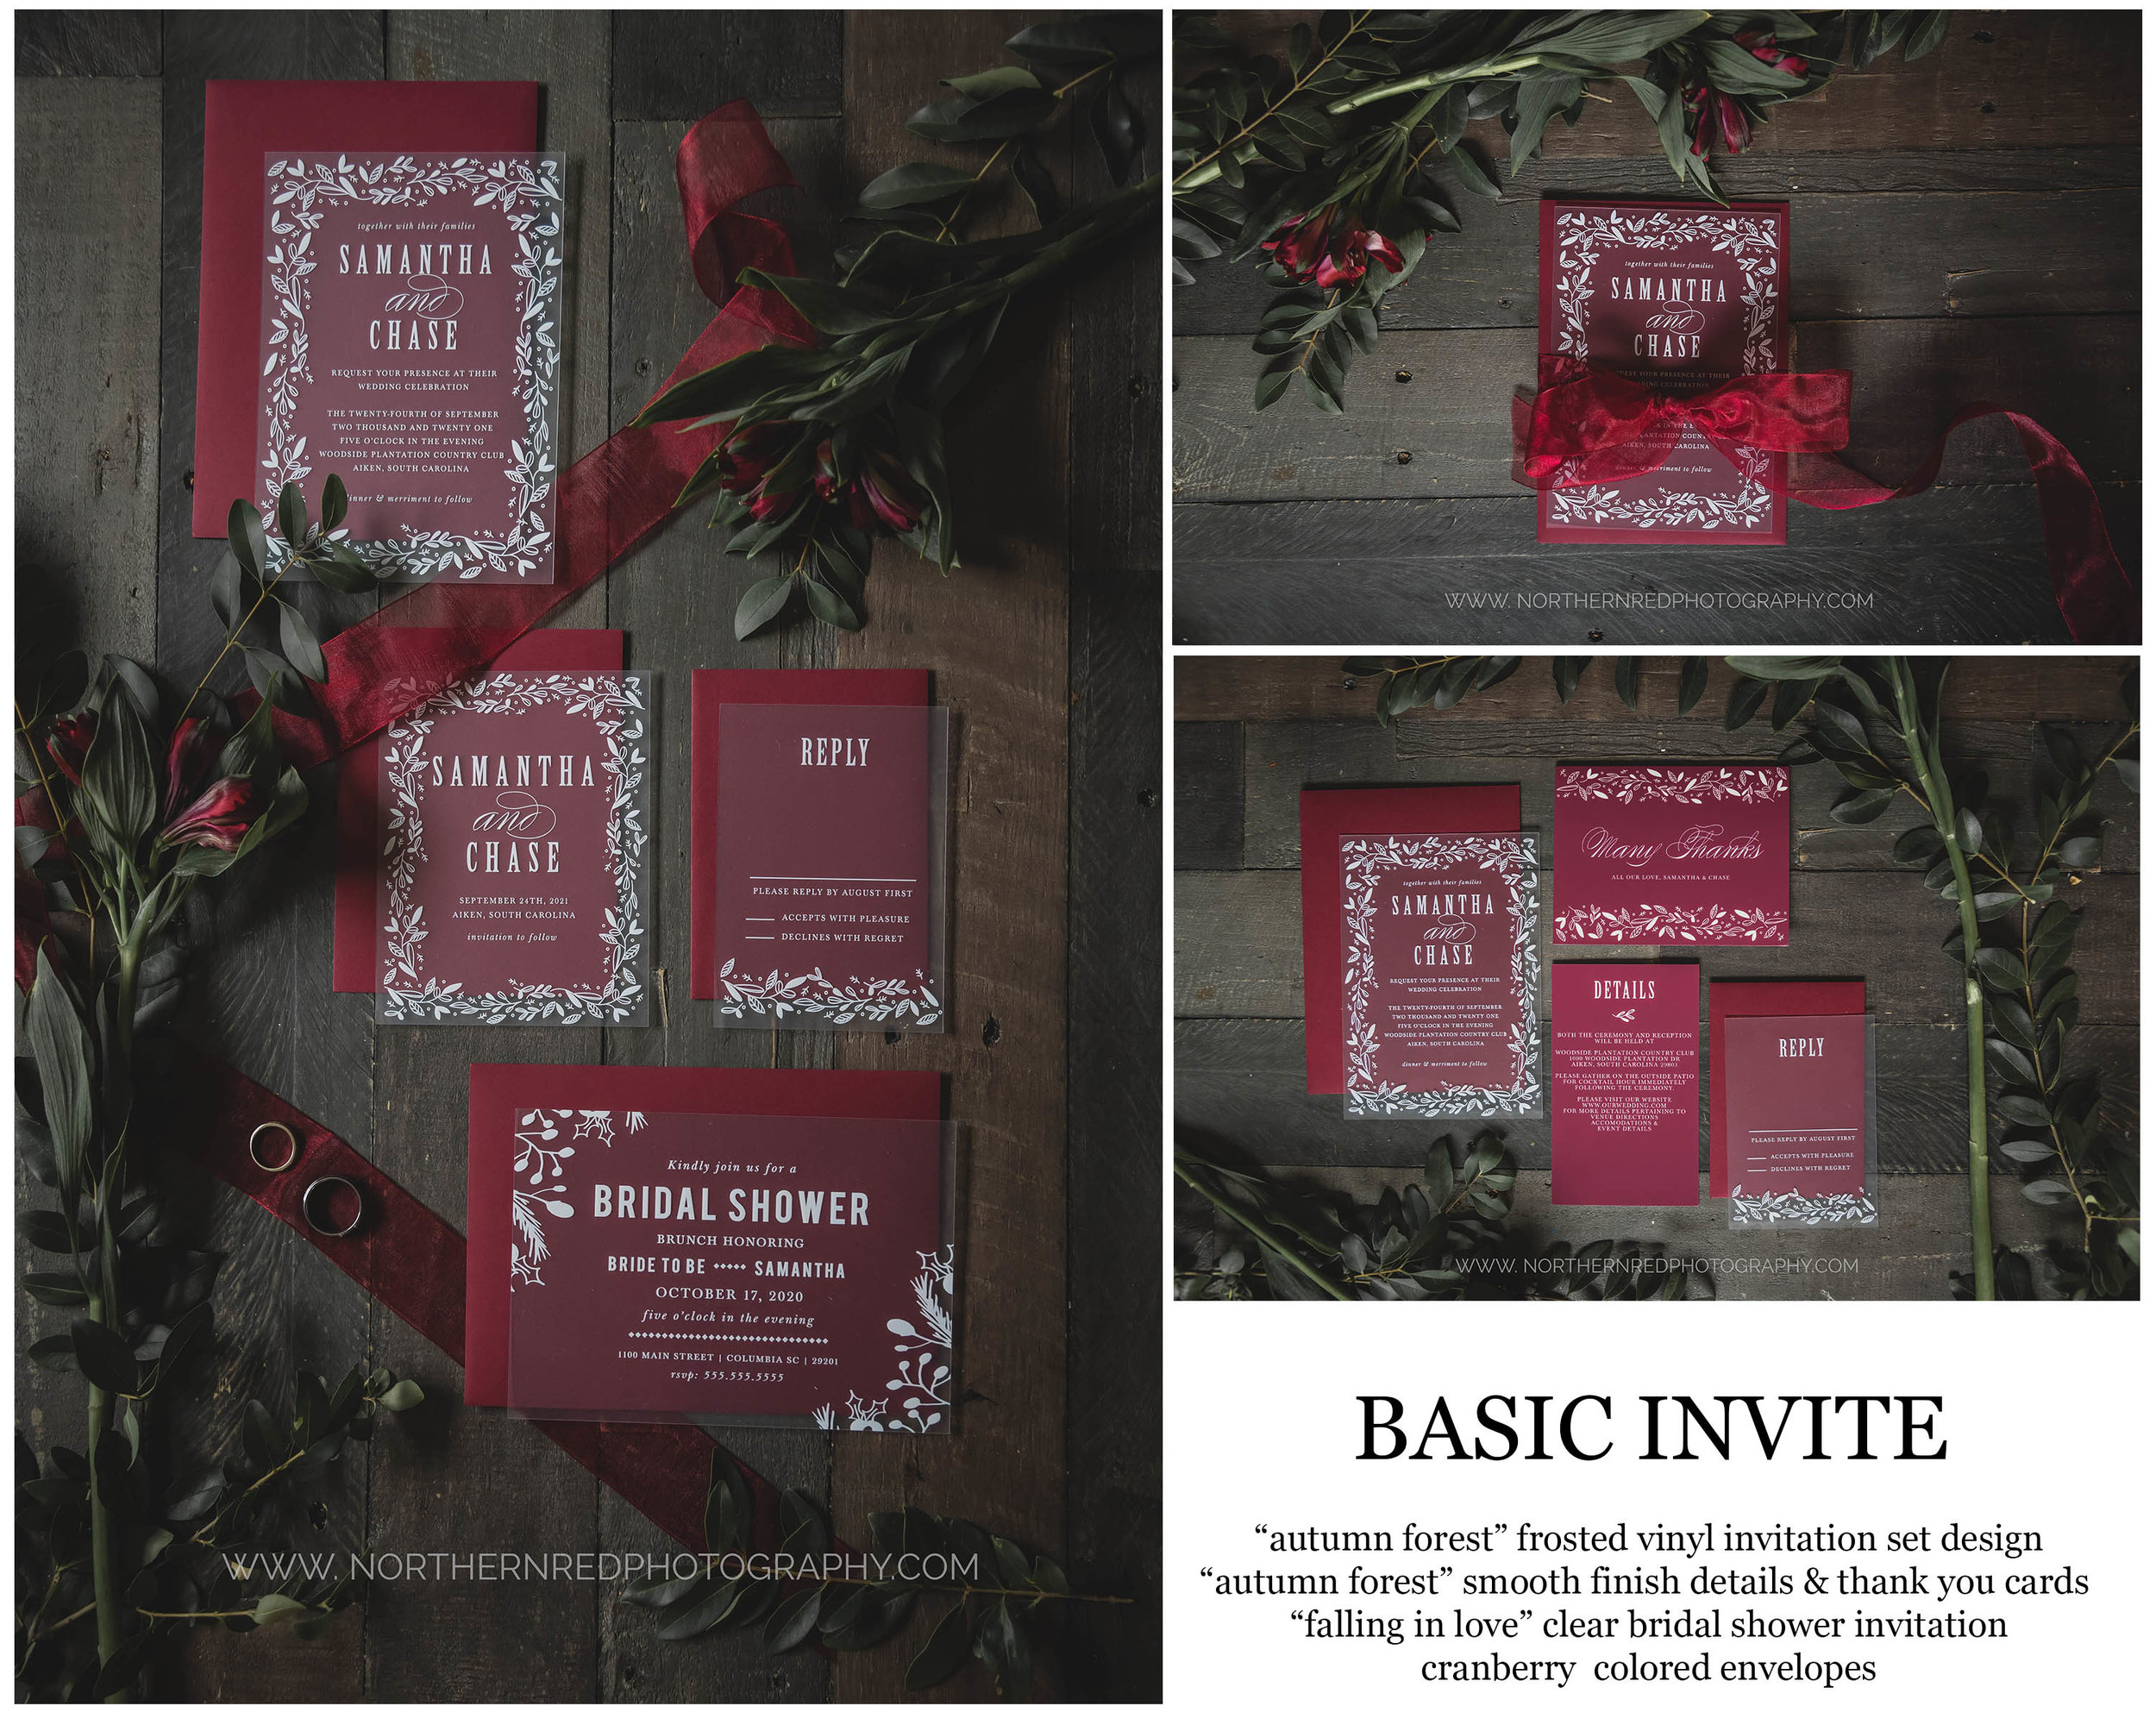 Basic Invite | Fall Invitations